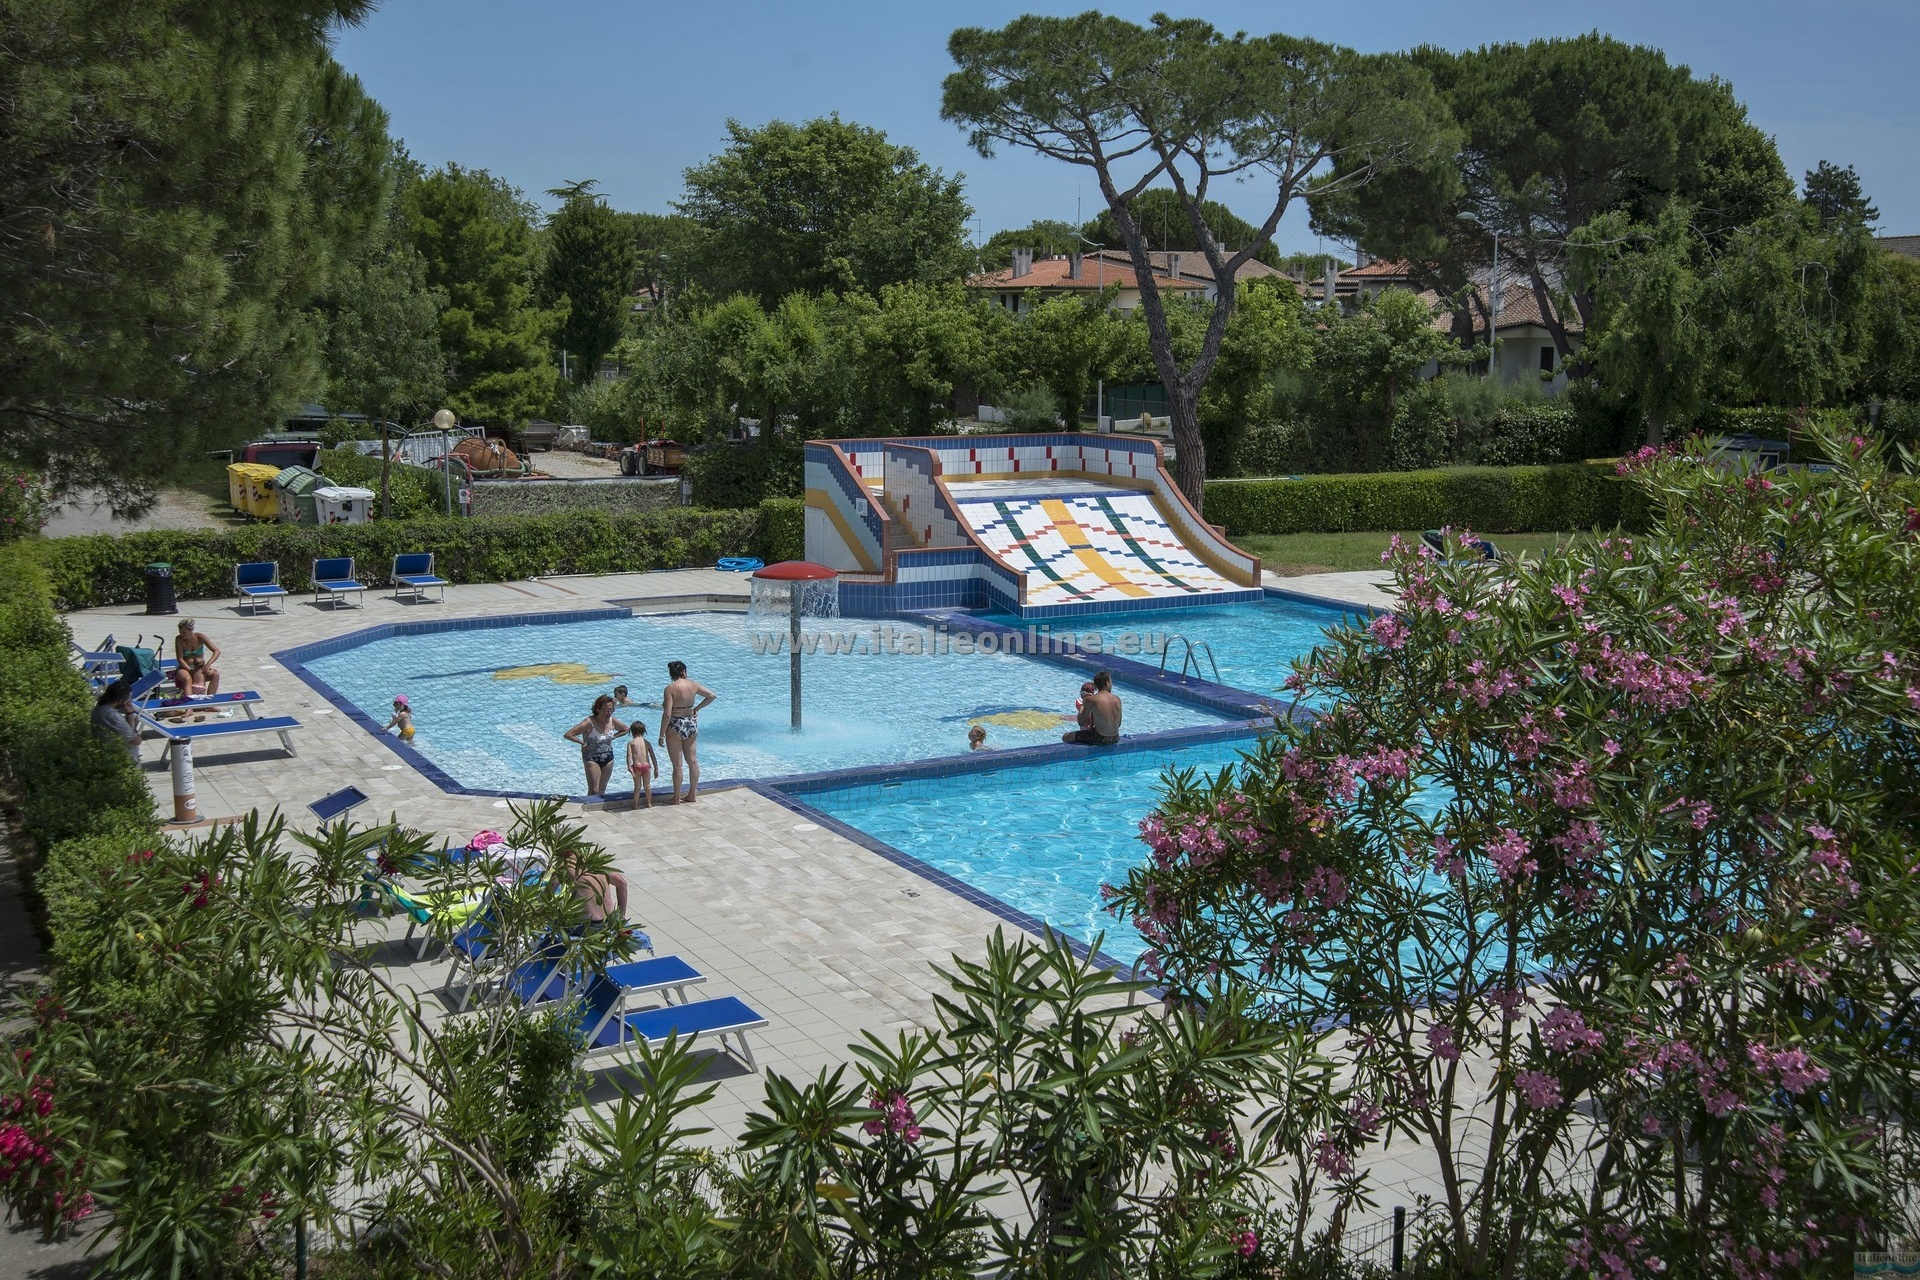 Camp San Francesco Caorle